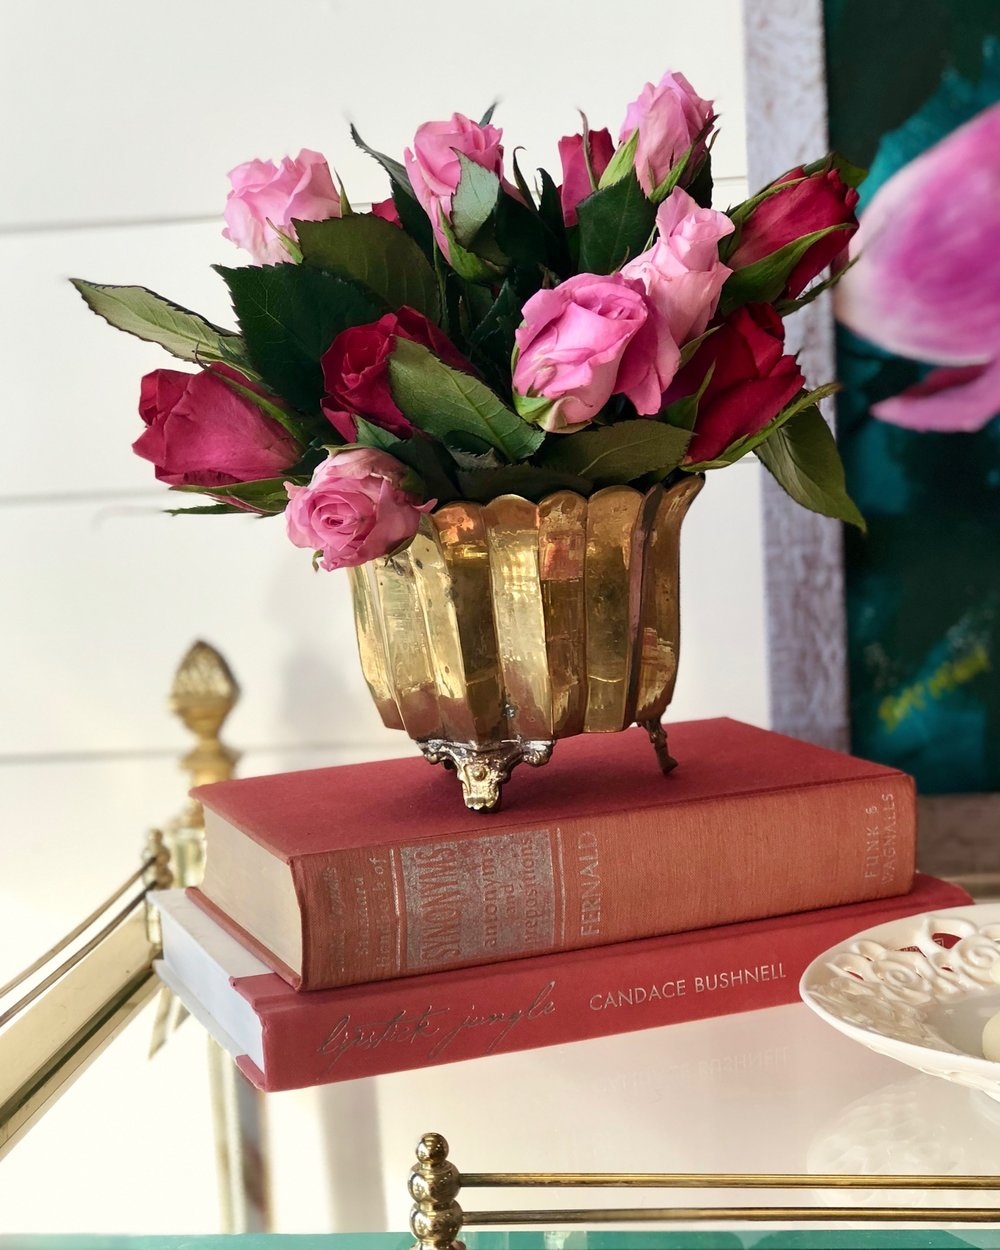 Having a gilded vase or small urn for flowers makes it convenient to display—as are books to create a pedestal for showing them off.